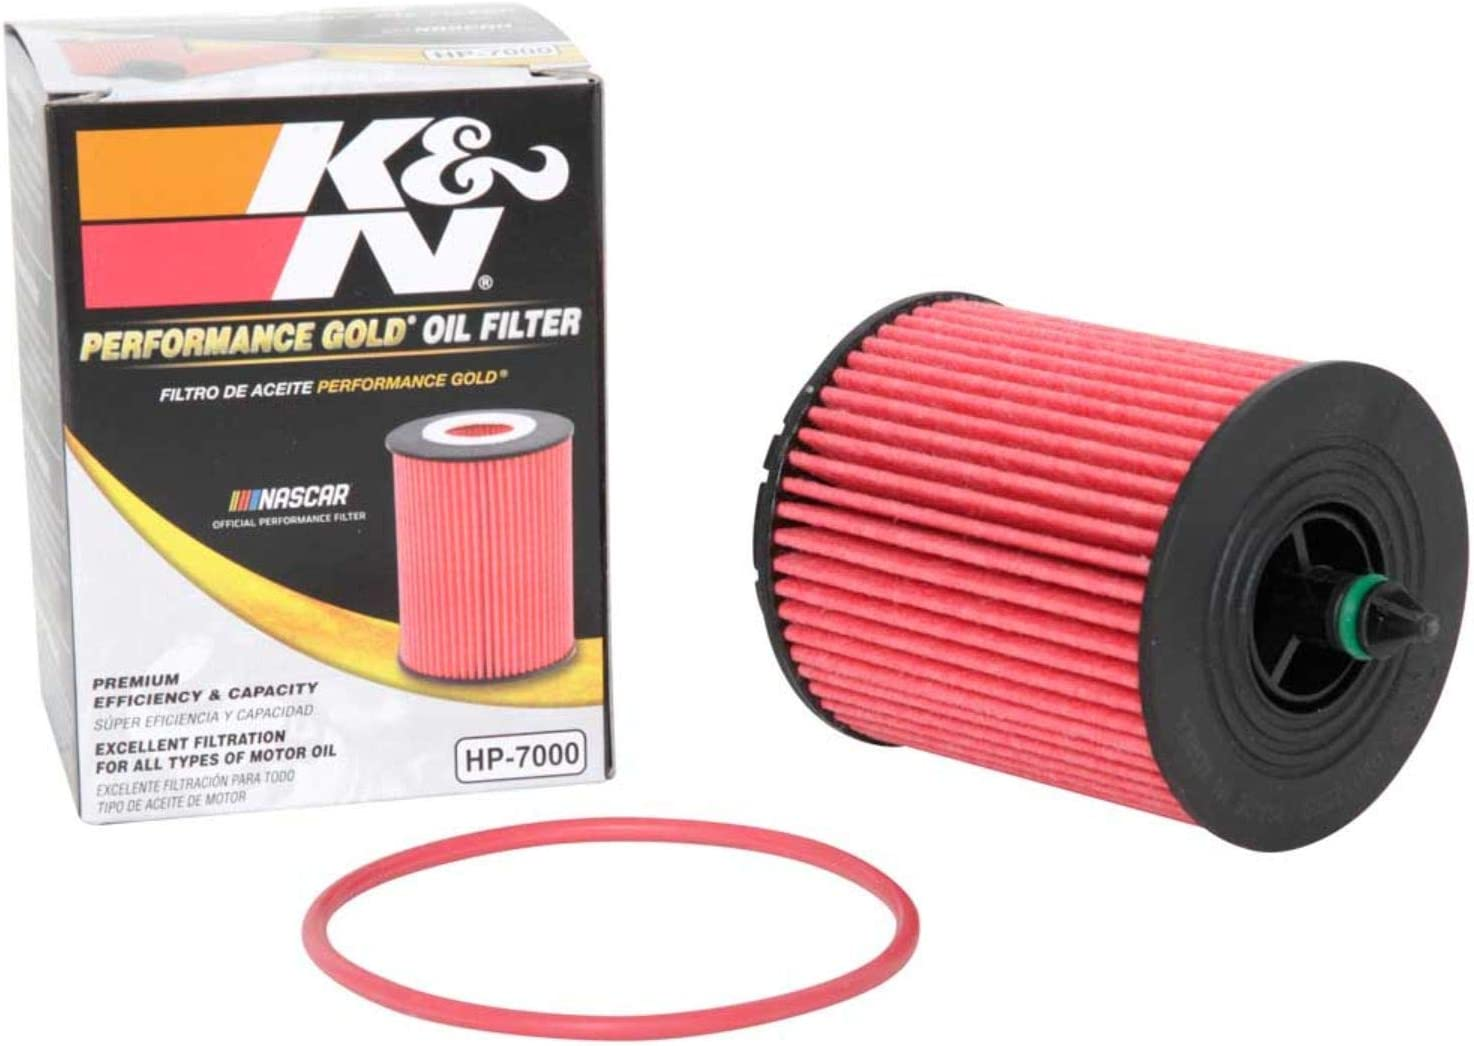 K&N Premium Oil Filter: Designed to Protect your Engine: Fits Select BUICK/CHEVROLET/POLARIS/SAAB Vehicle Models (See Product Description for Full List of Compatible Vehicles), HP-7000